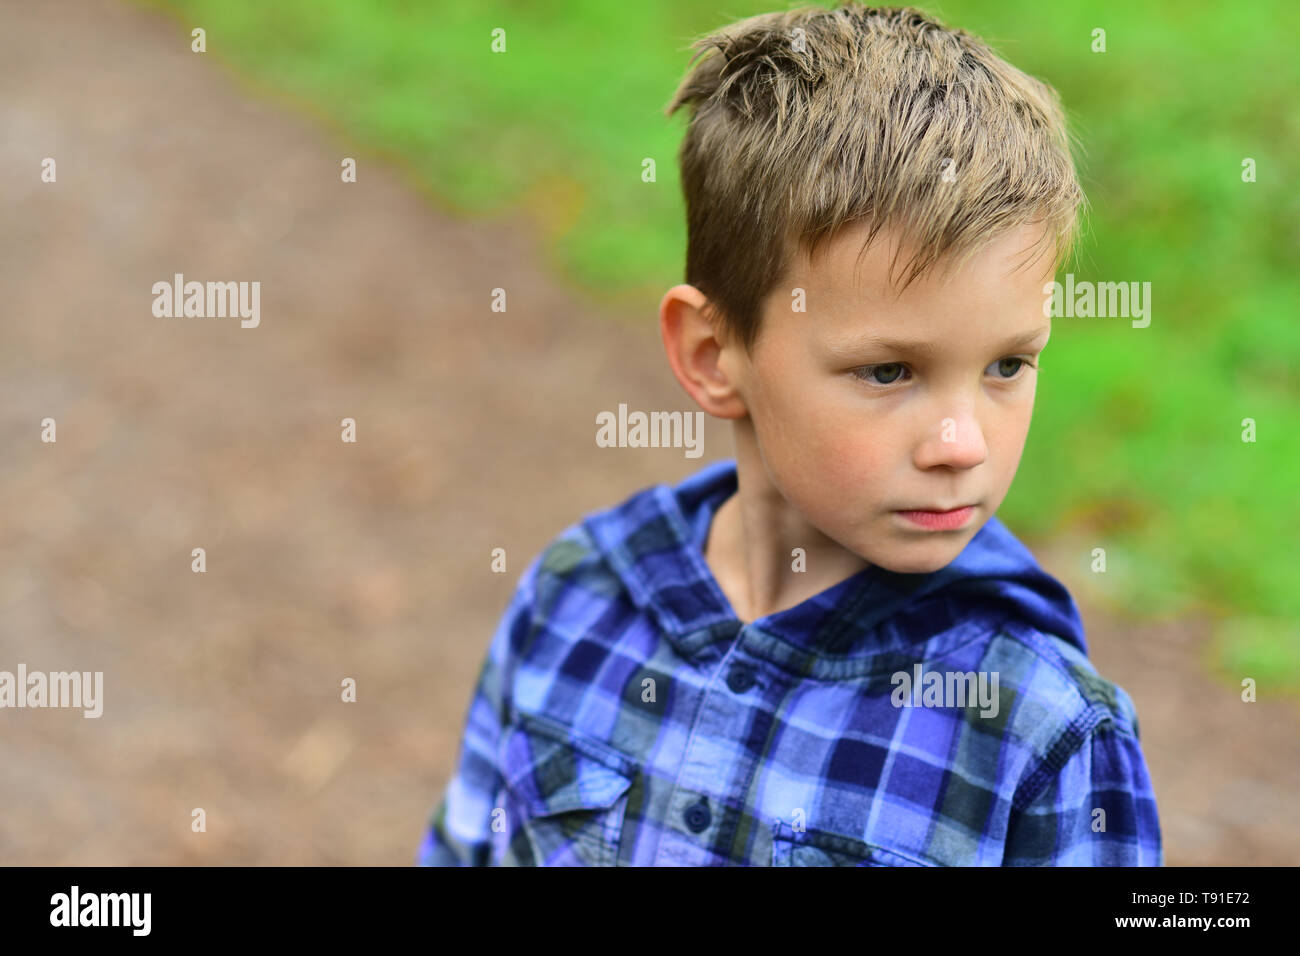 I keep my hair natural. Little boy with short hair. Little boy with stylish haircut. To get their hair done makes a person feels better - Stock Image